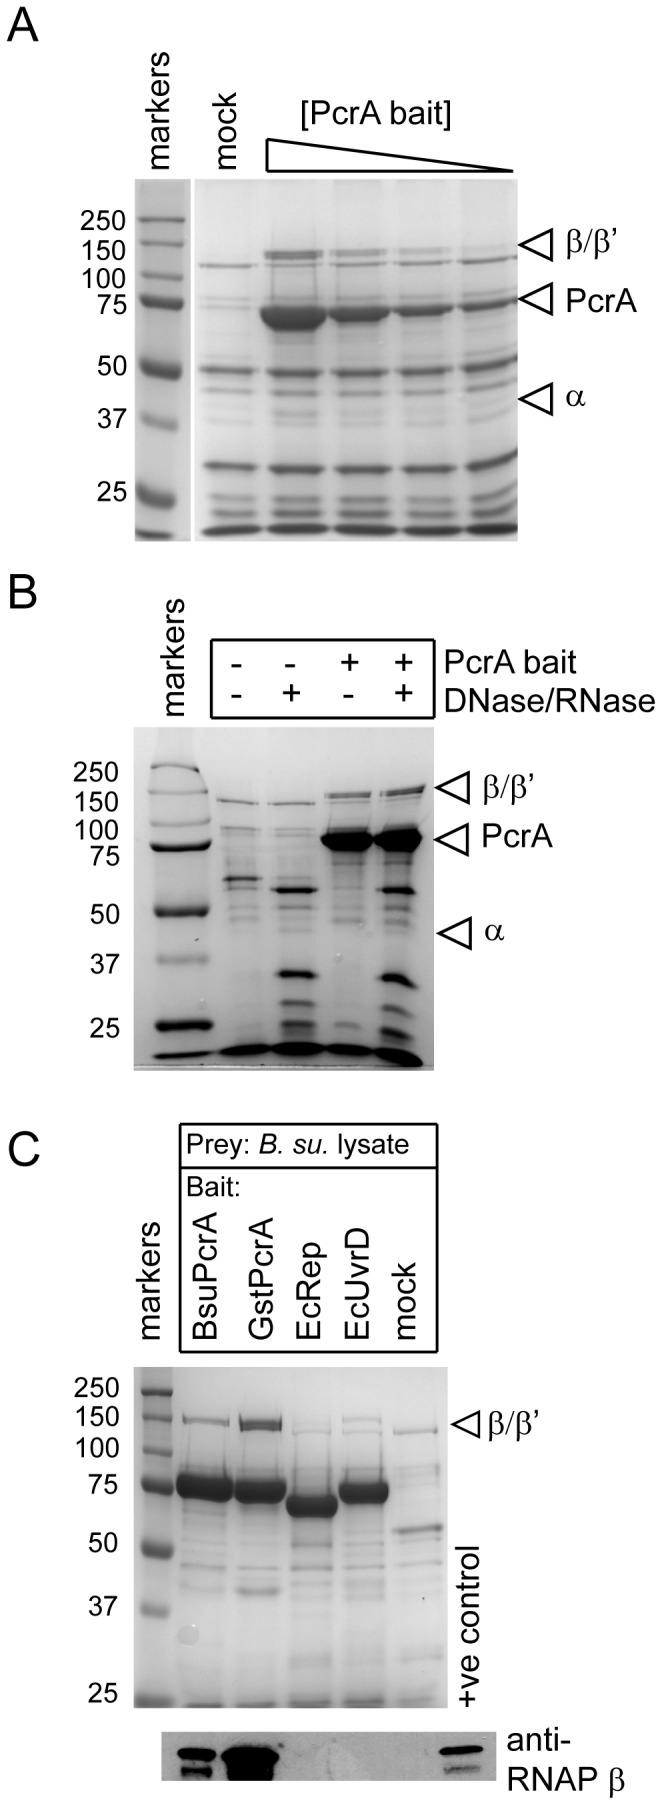 Interactions between PcrA helicase and RNAP studied using magnetic bead pull down assays. (A) SDS-PAGE gel showing dose-dependent pull down of the core RNAP subunits from a DNA/RNA -depleted B. subtilis cell extract by biotinylated BsuPcrA (between 2 - 17 µg) on magnetic streptavidin beads. In the mock pull down, the beads were not baited with PcrA. (B) Depletion of nucleic acids from the cell extract by treatment with DNase and RNase has no apparent effect on the efficiency of RNAP pull down by BsuPcrA. (C) Interaction with Bacillus RNAP is specific to the PcrA helicase. The beads were baited with the helicase indicated and used to pull down proteins from B. subtilis cell extract (upper panel). The samples were analysed for the presence of RNA polymerase using an antibody against the β subunit (lower panel). The positive control lane contains purified RNA polymerase.